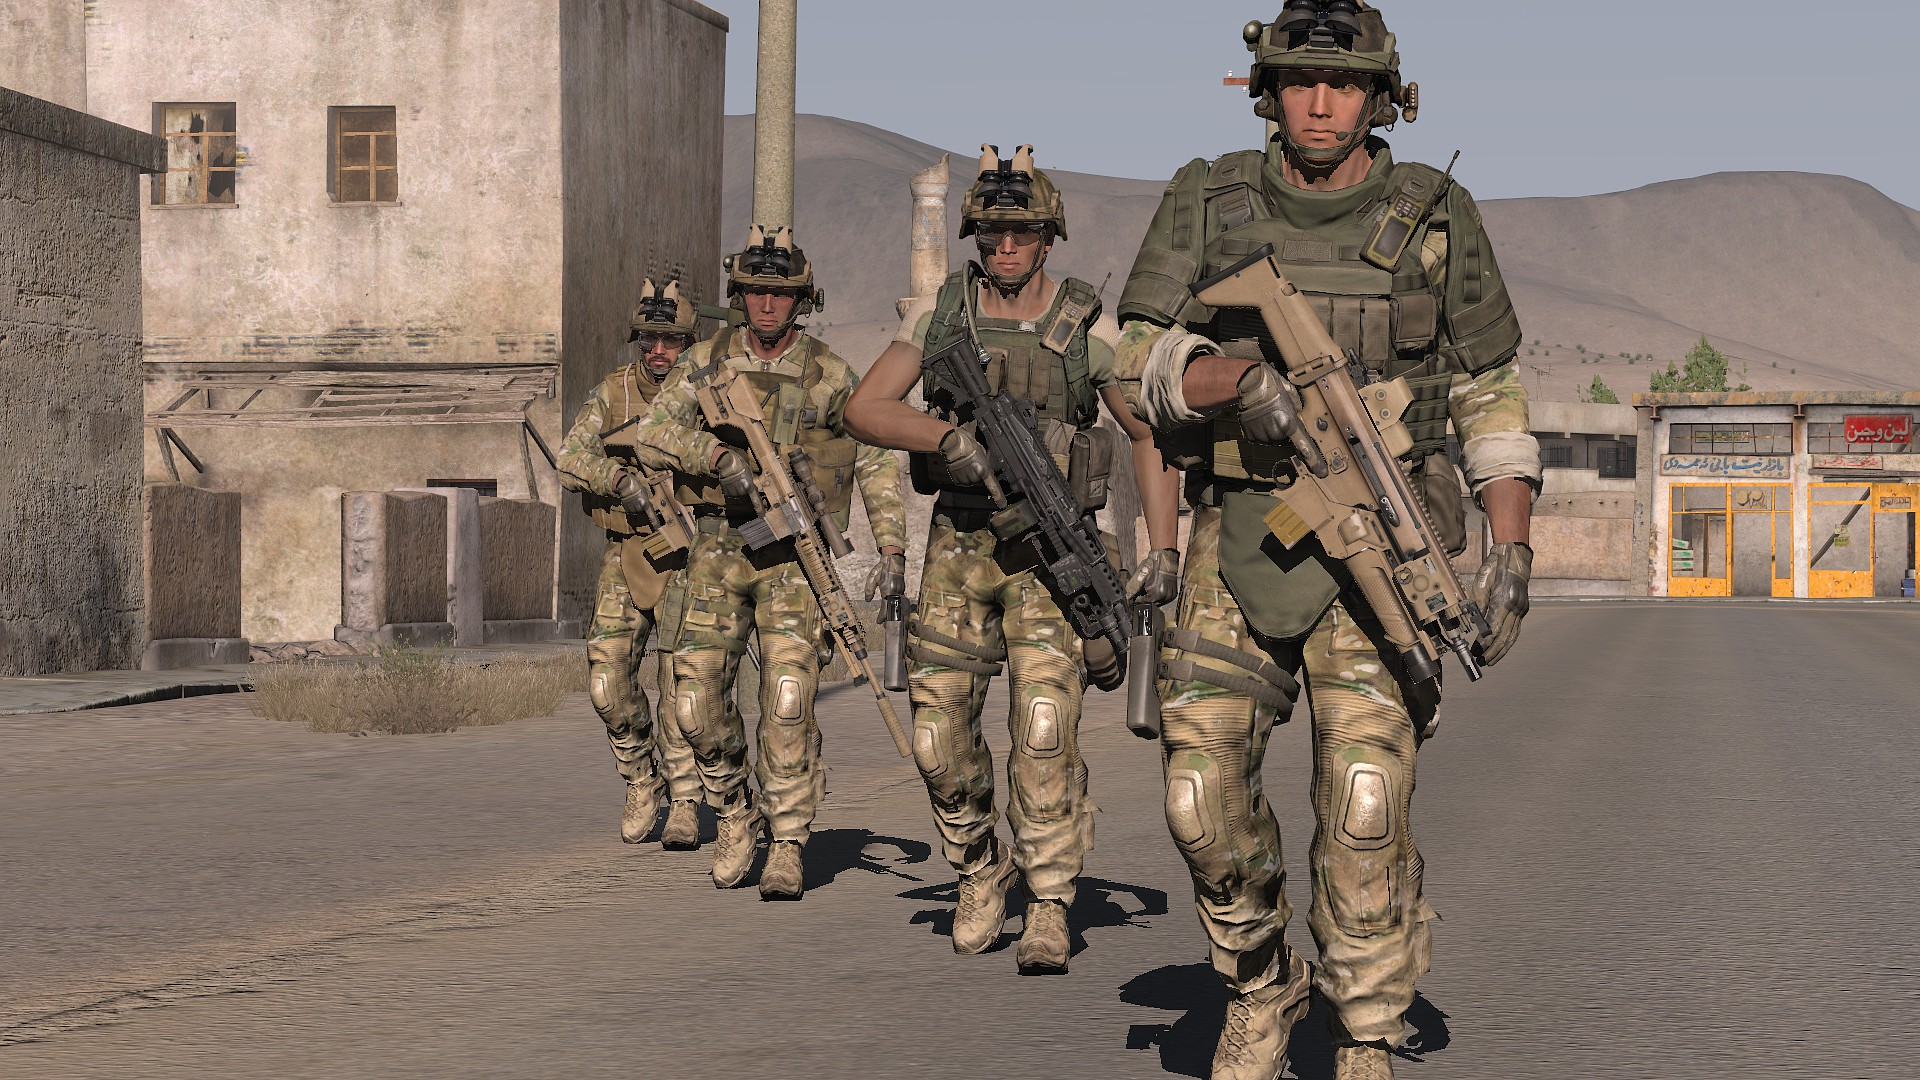 mesopotam iraqs armed forces - HD1920×1080